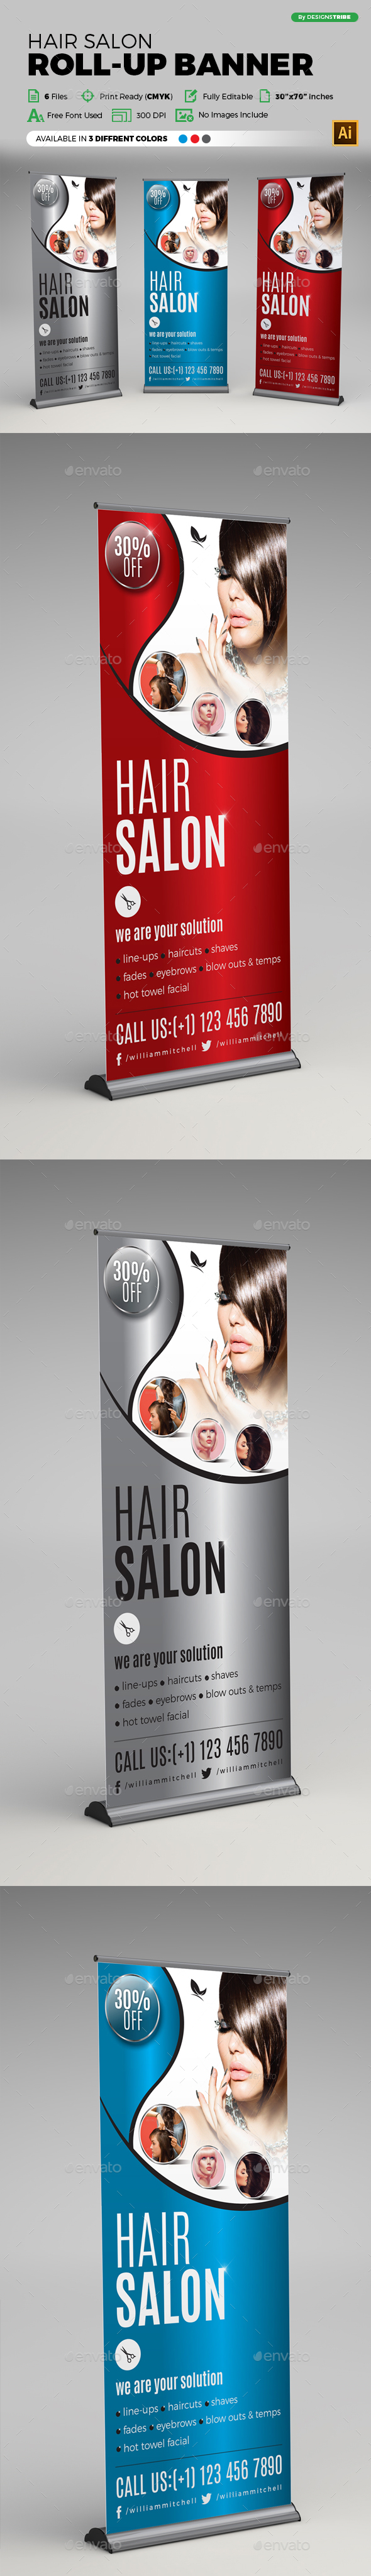 Hair Salon Roll-up Banner - Signage Print Templates